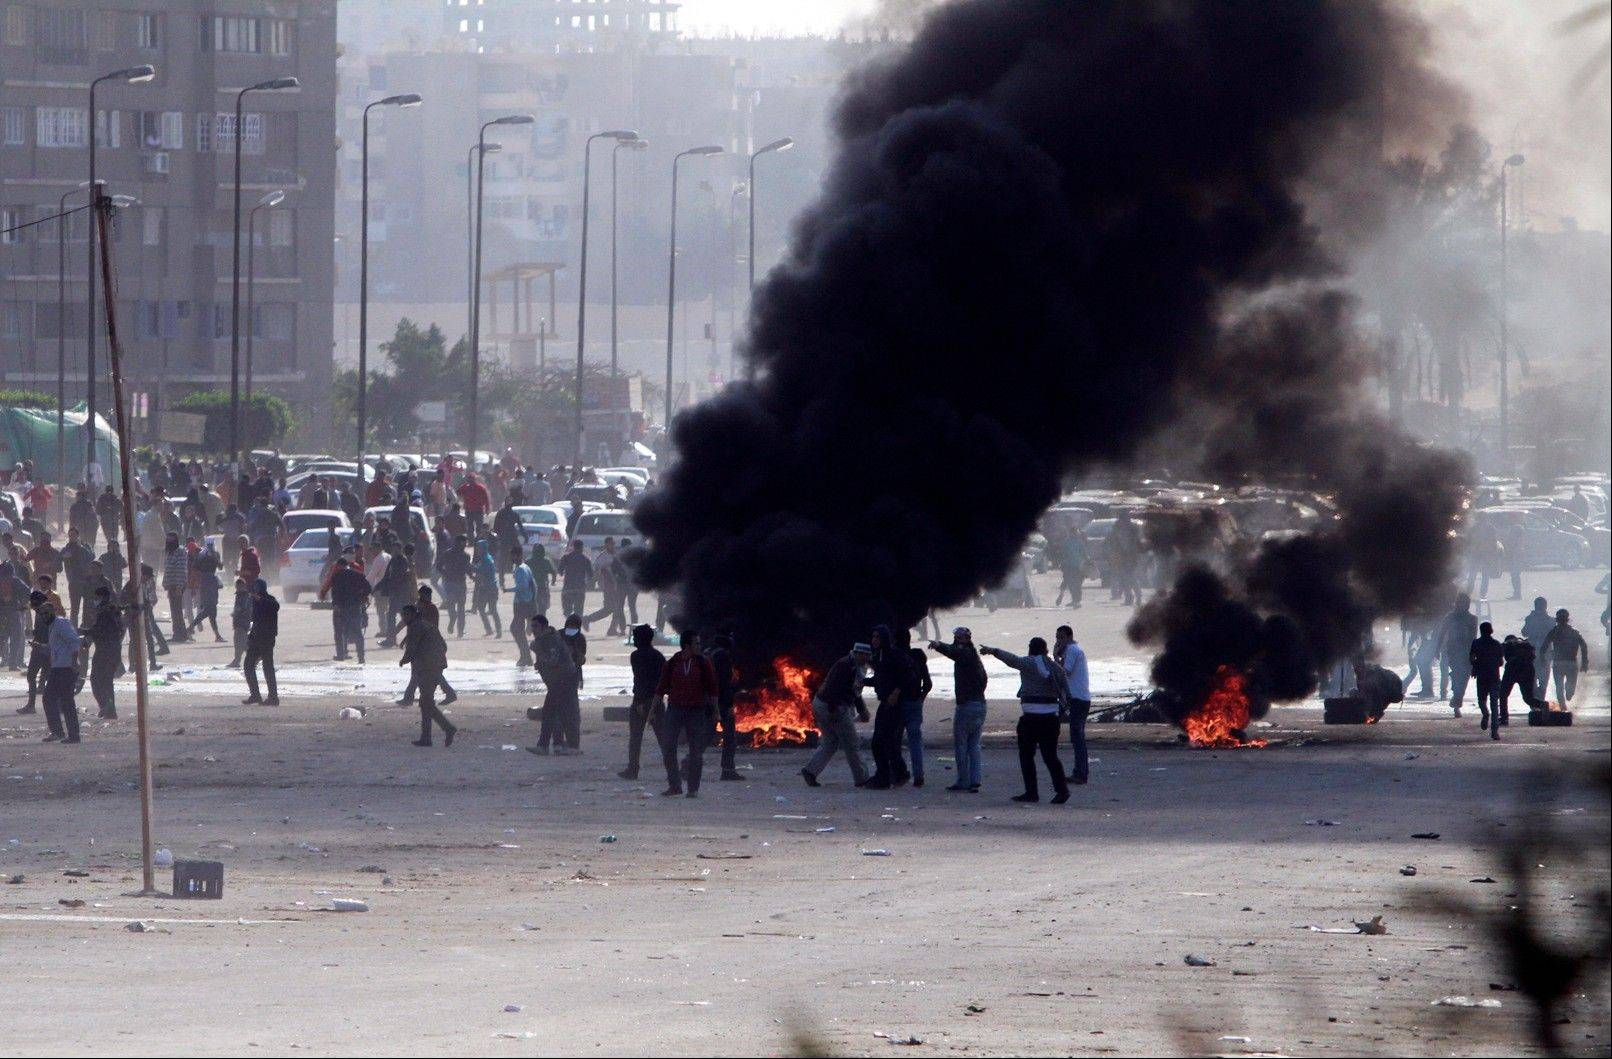 Supporters of ousted President Mohammed Morsi damage an area on a street Friday as they protest against the government in Cairo's Nasr City district.